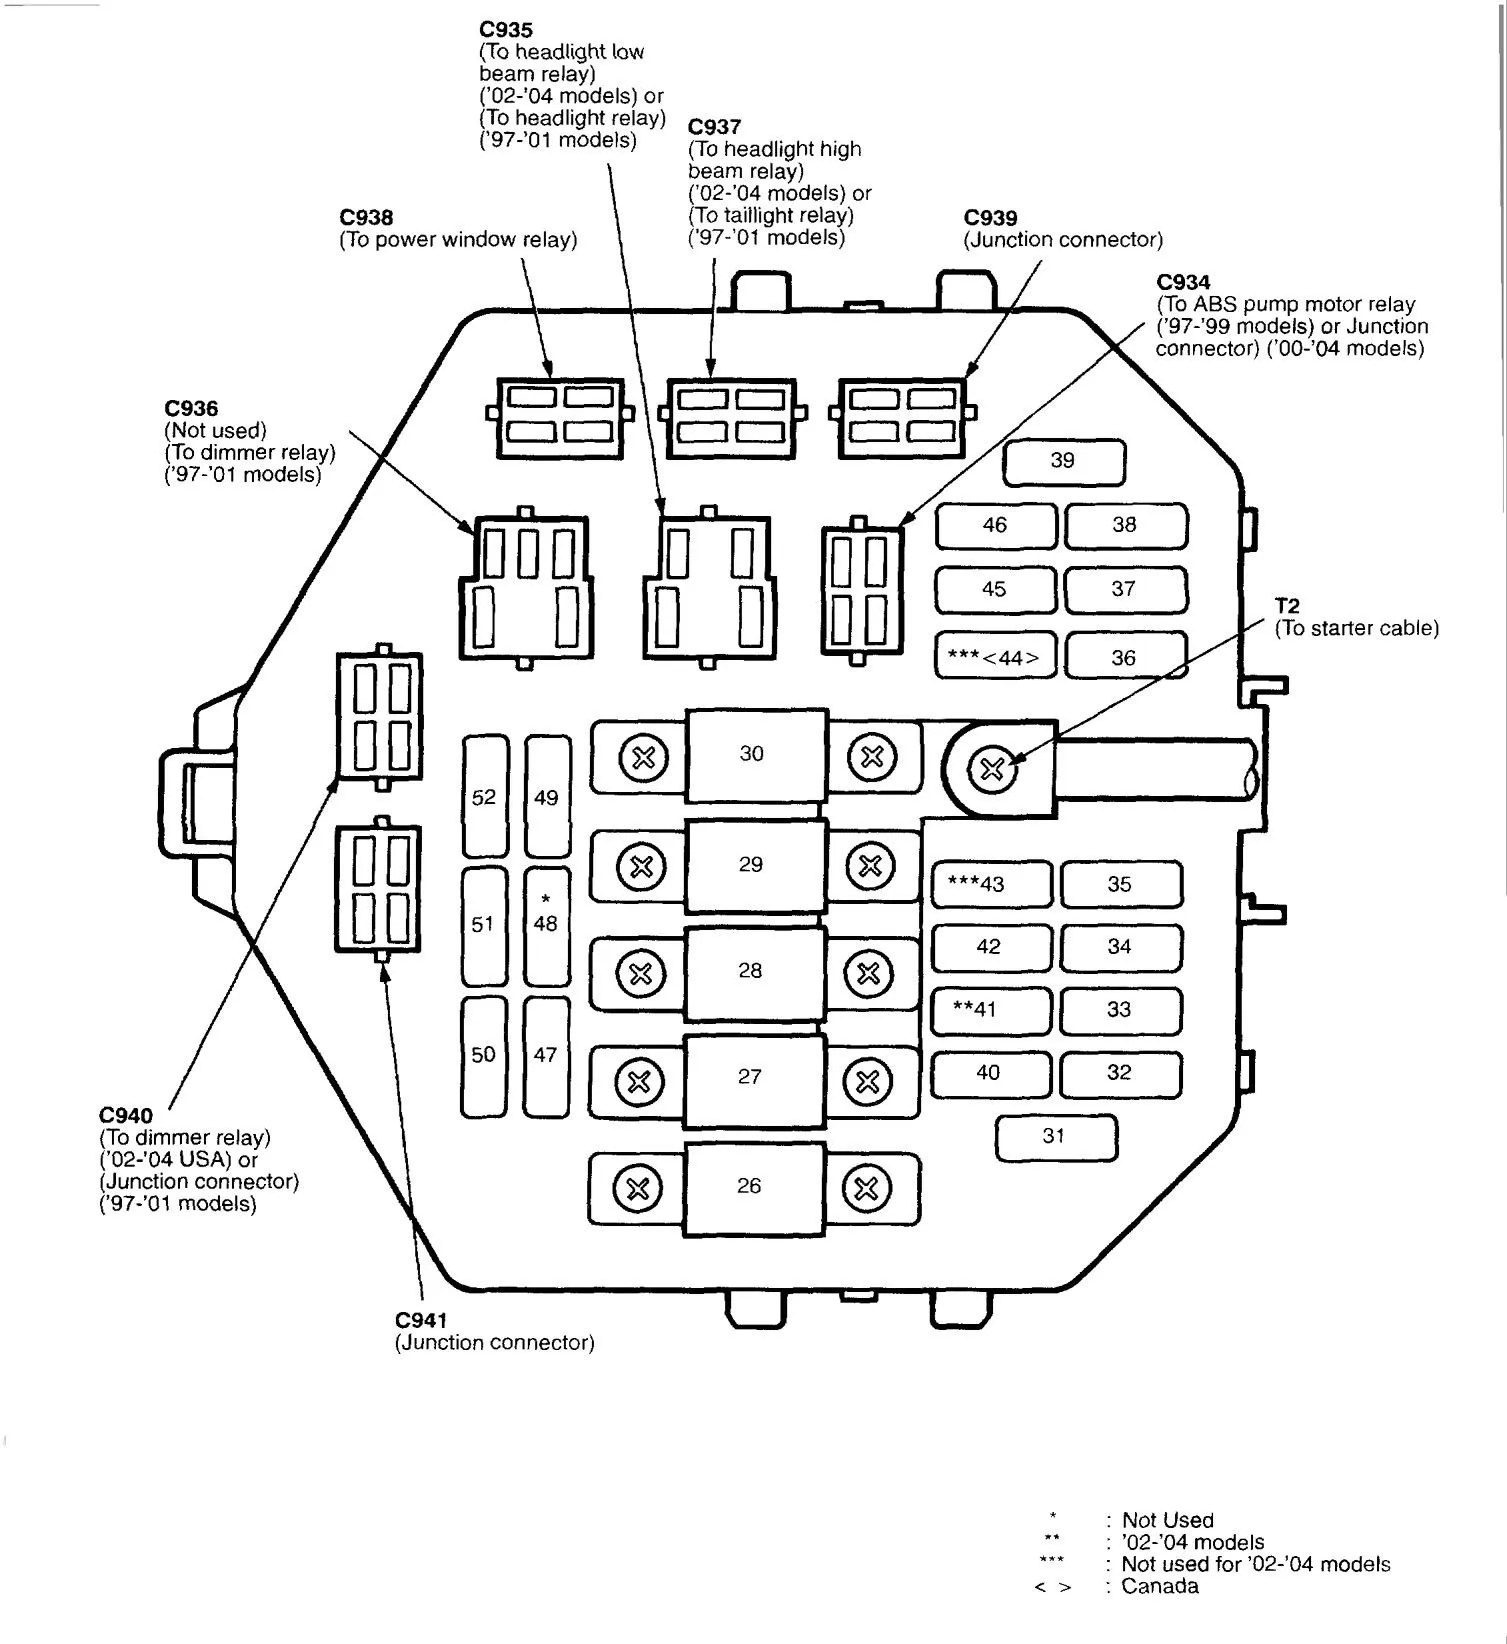 hight resolution of acura nsx 1997 2004 wiring diagrams fuse panel